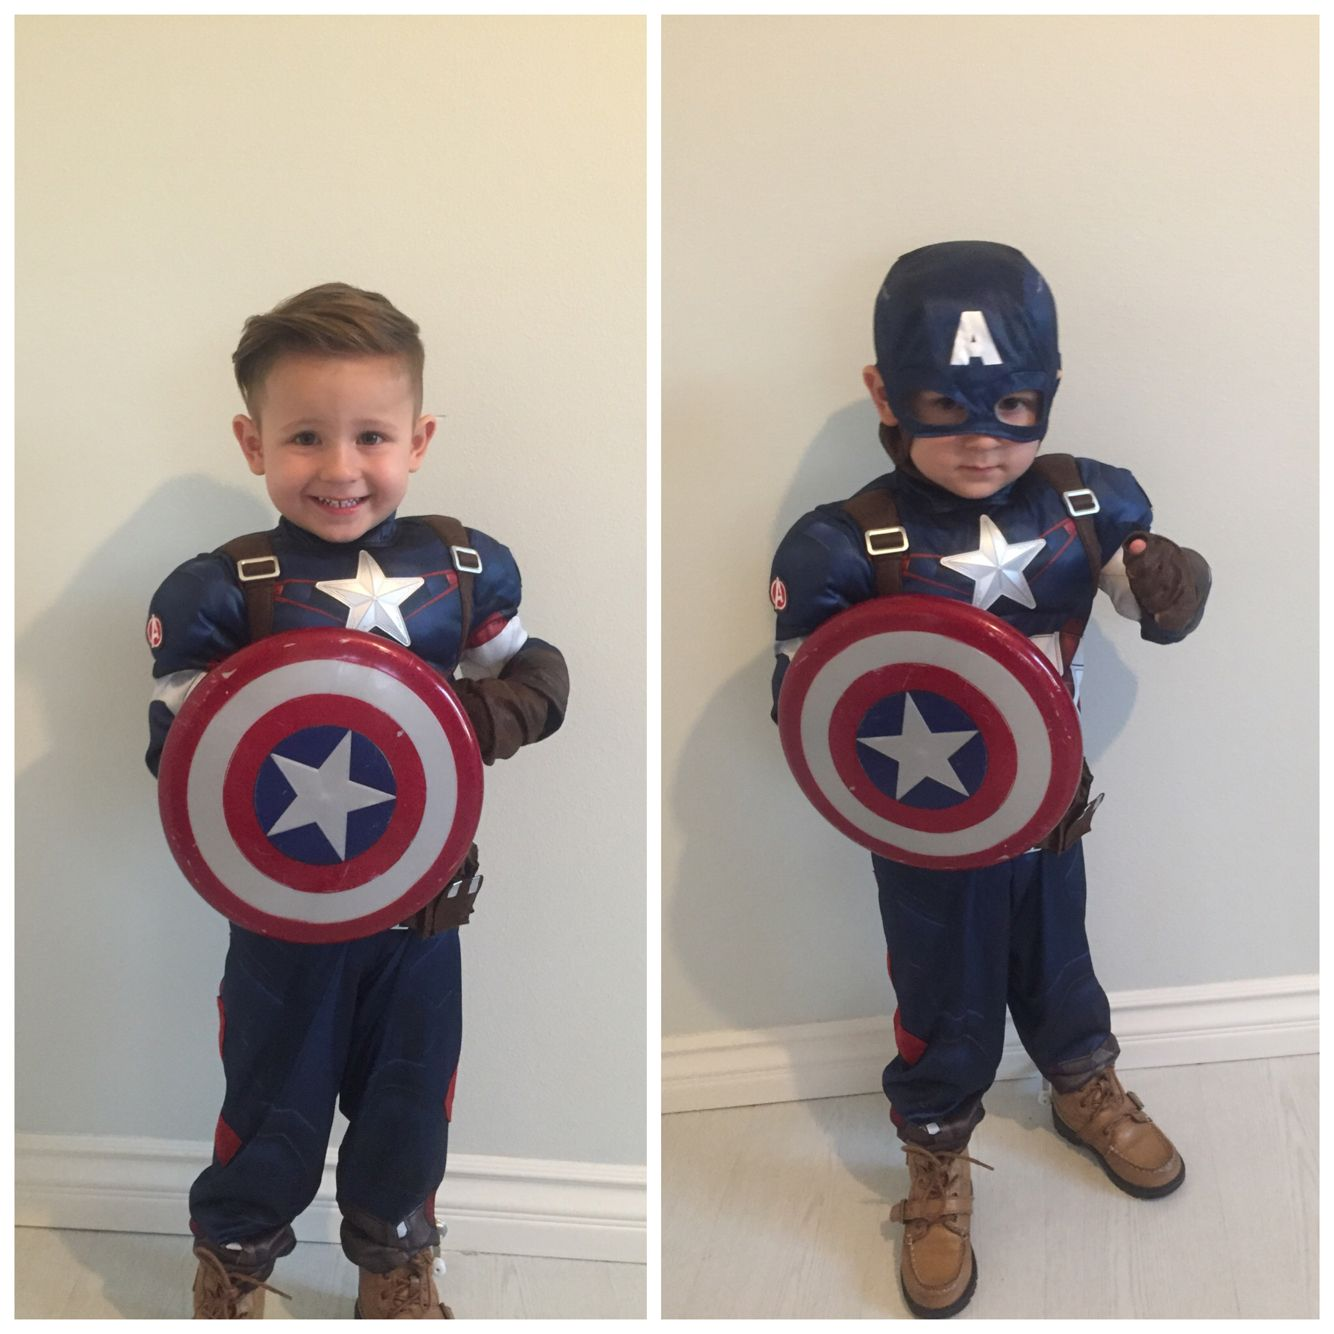 Captain America Halloween Costume Kids Toddlers Captain America Halloween Costume Captain America Costume Kids Captain America Costume Diy Get your courageous youngster ready for epic adventures as one of the universe's most powerful heroes in this awesome costume inspired by the forthcoming blockbuster, marvel's captain you may experience issues while visiting marvel shop with your current web browser version/configuration. captain america halloween costume kids